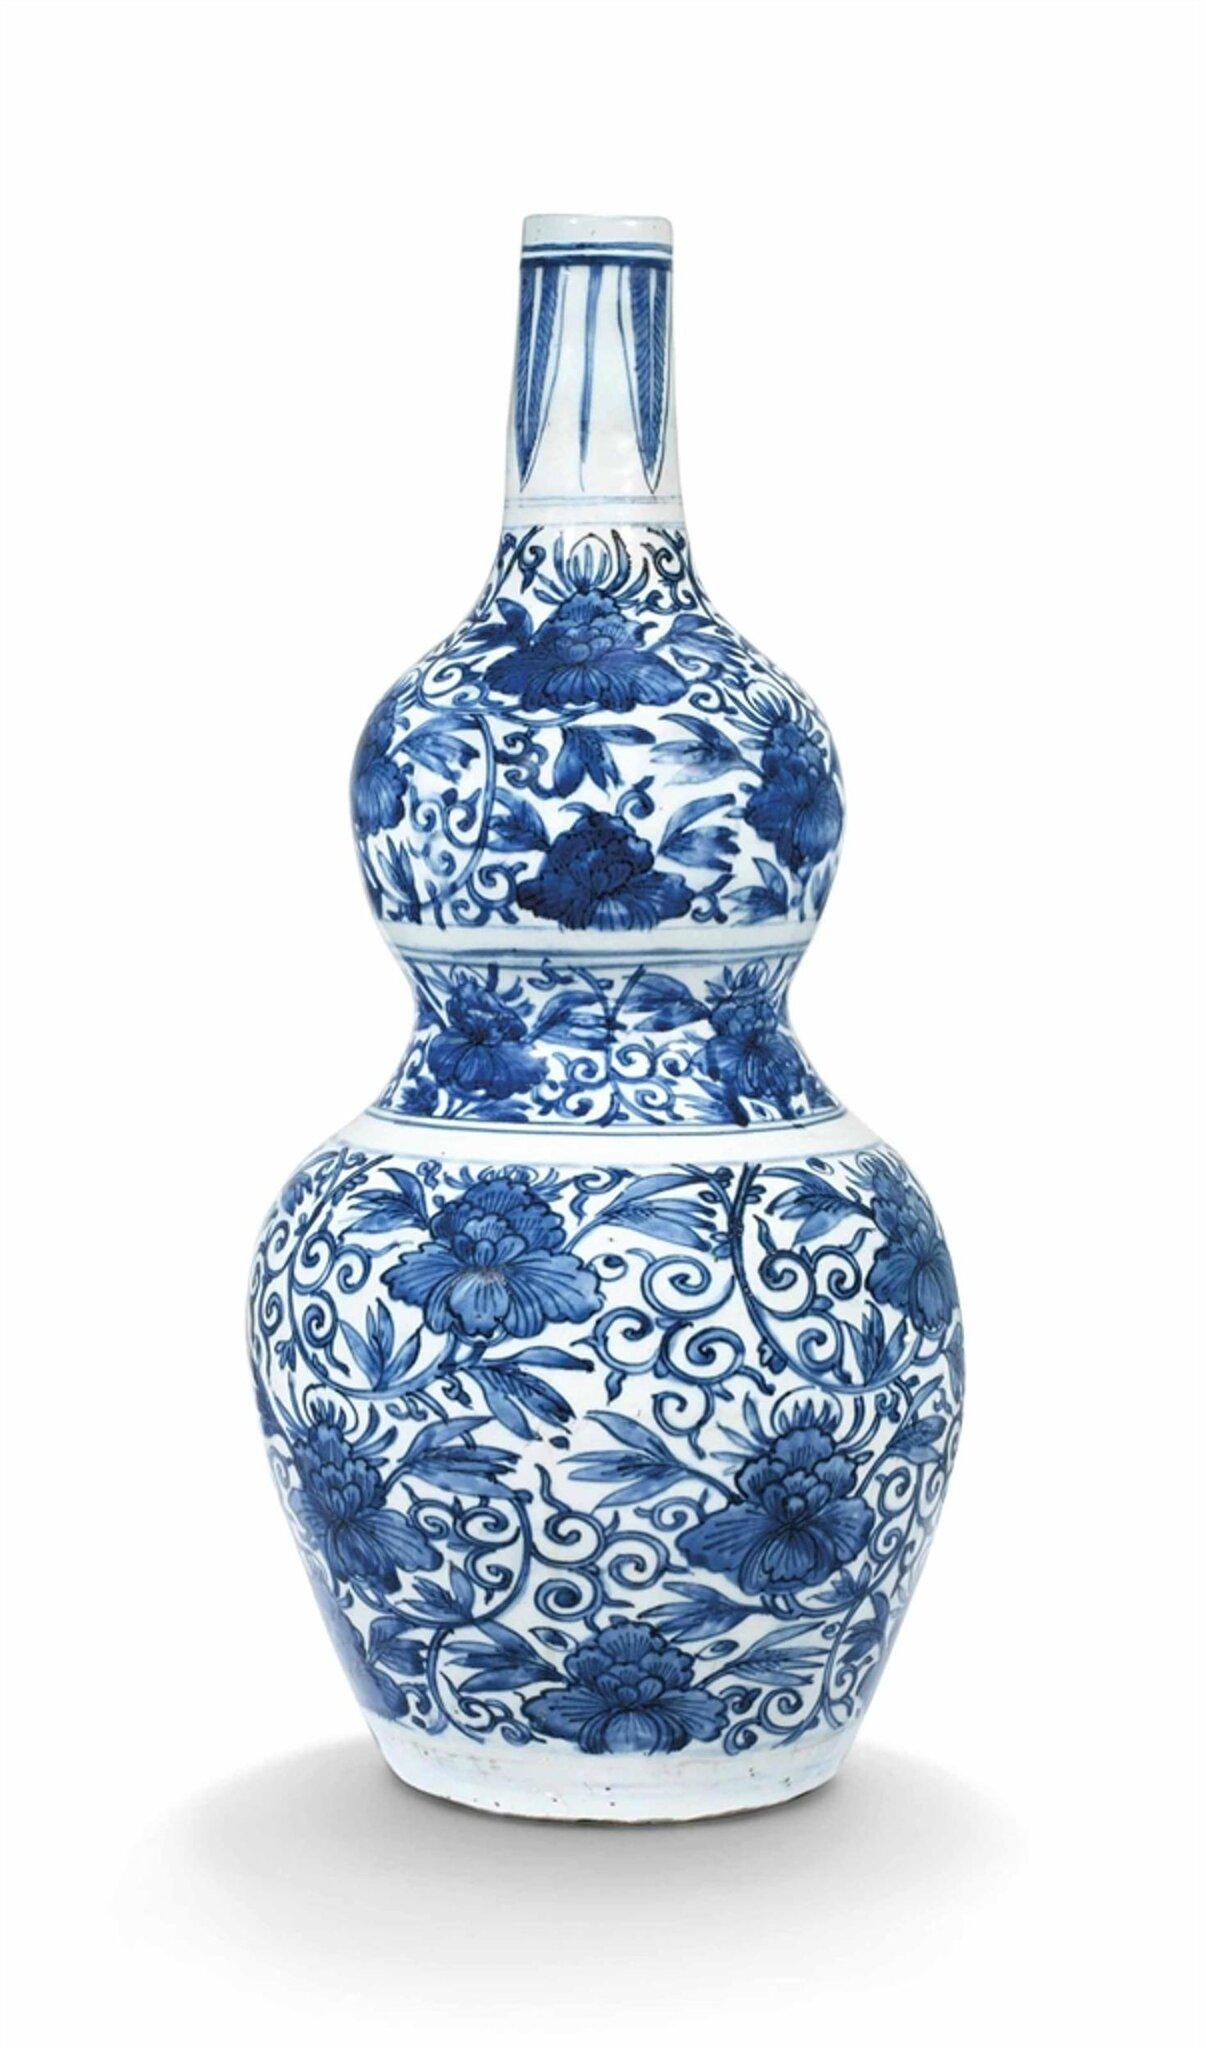 A large blue and white double-gourd shaped vase, Ming dynasty, Wanli period (1573-1619)